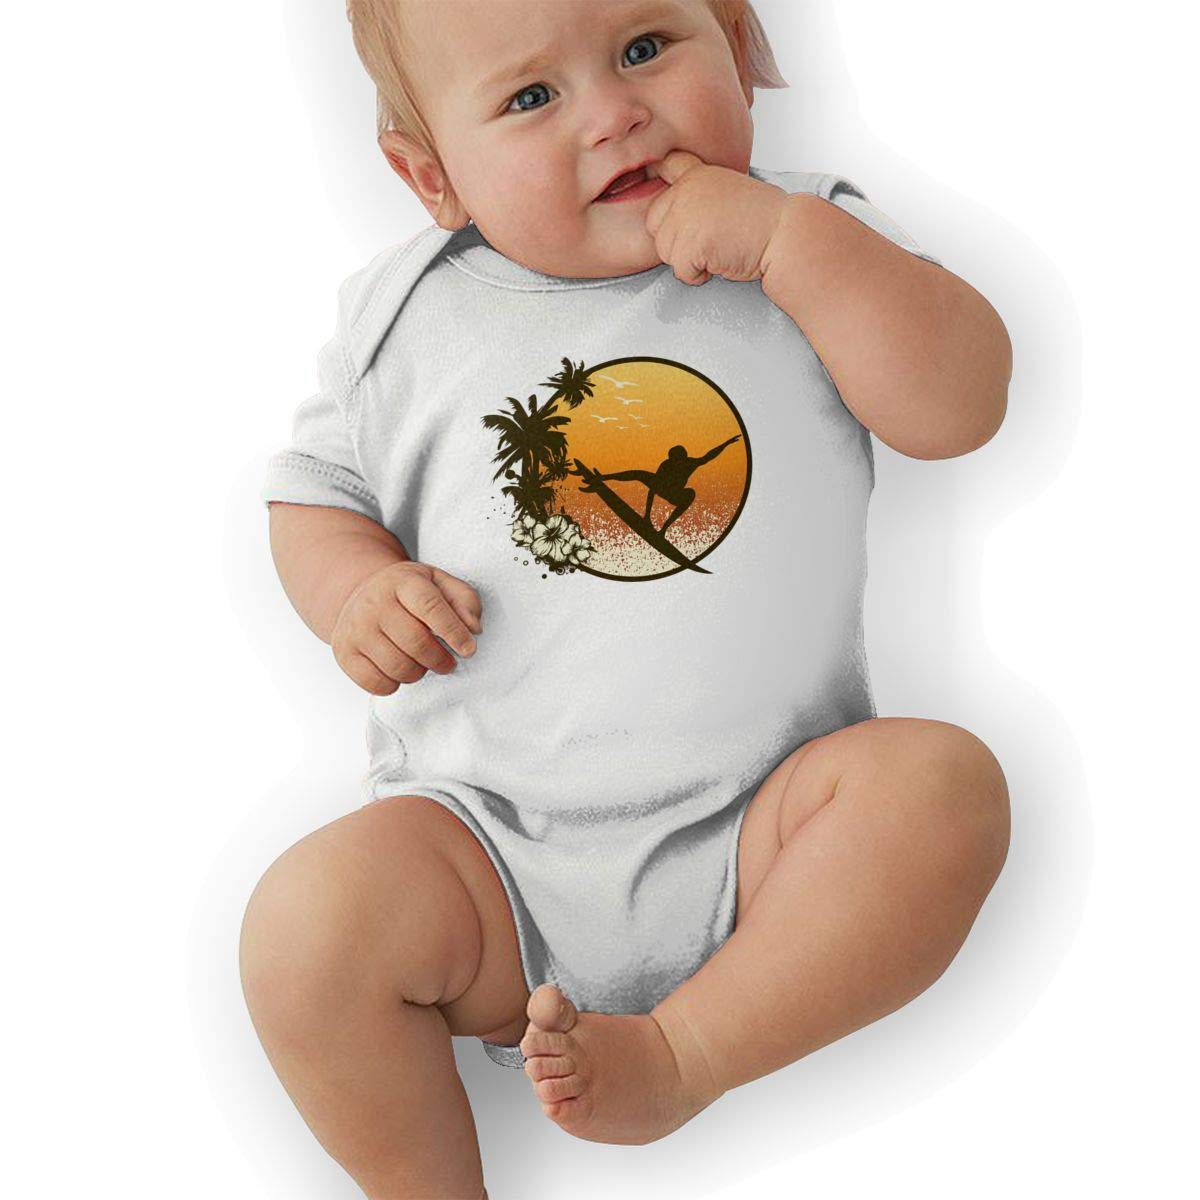 Hawaii Cool Surfer Silhouette Baby Boys Girls Jumpsuits Short Sleeve Romper Bodysuit Bodysuit Jumpsuit Outfits White